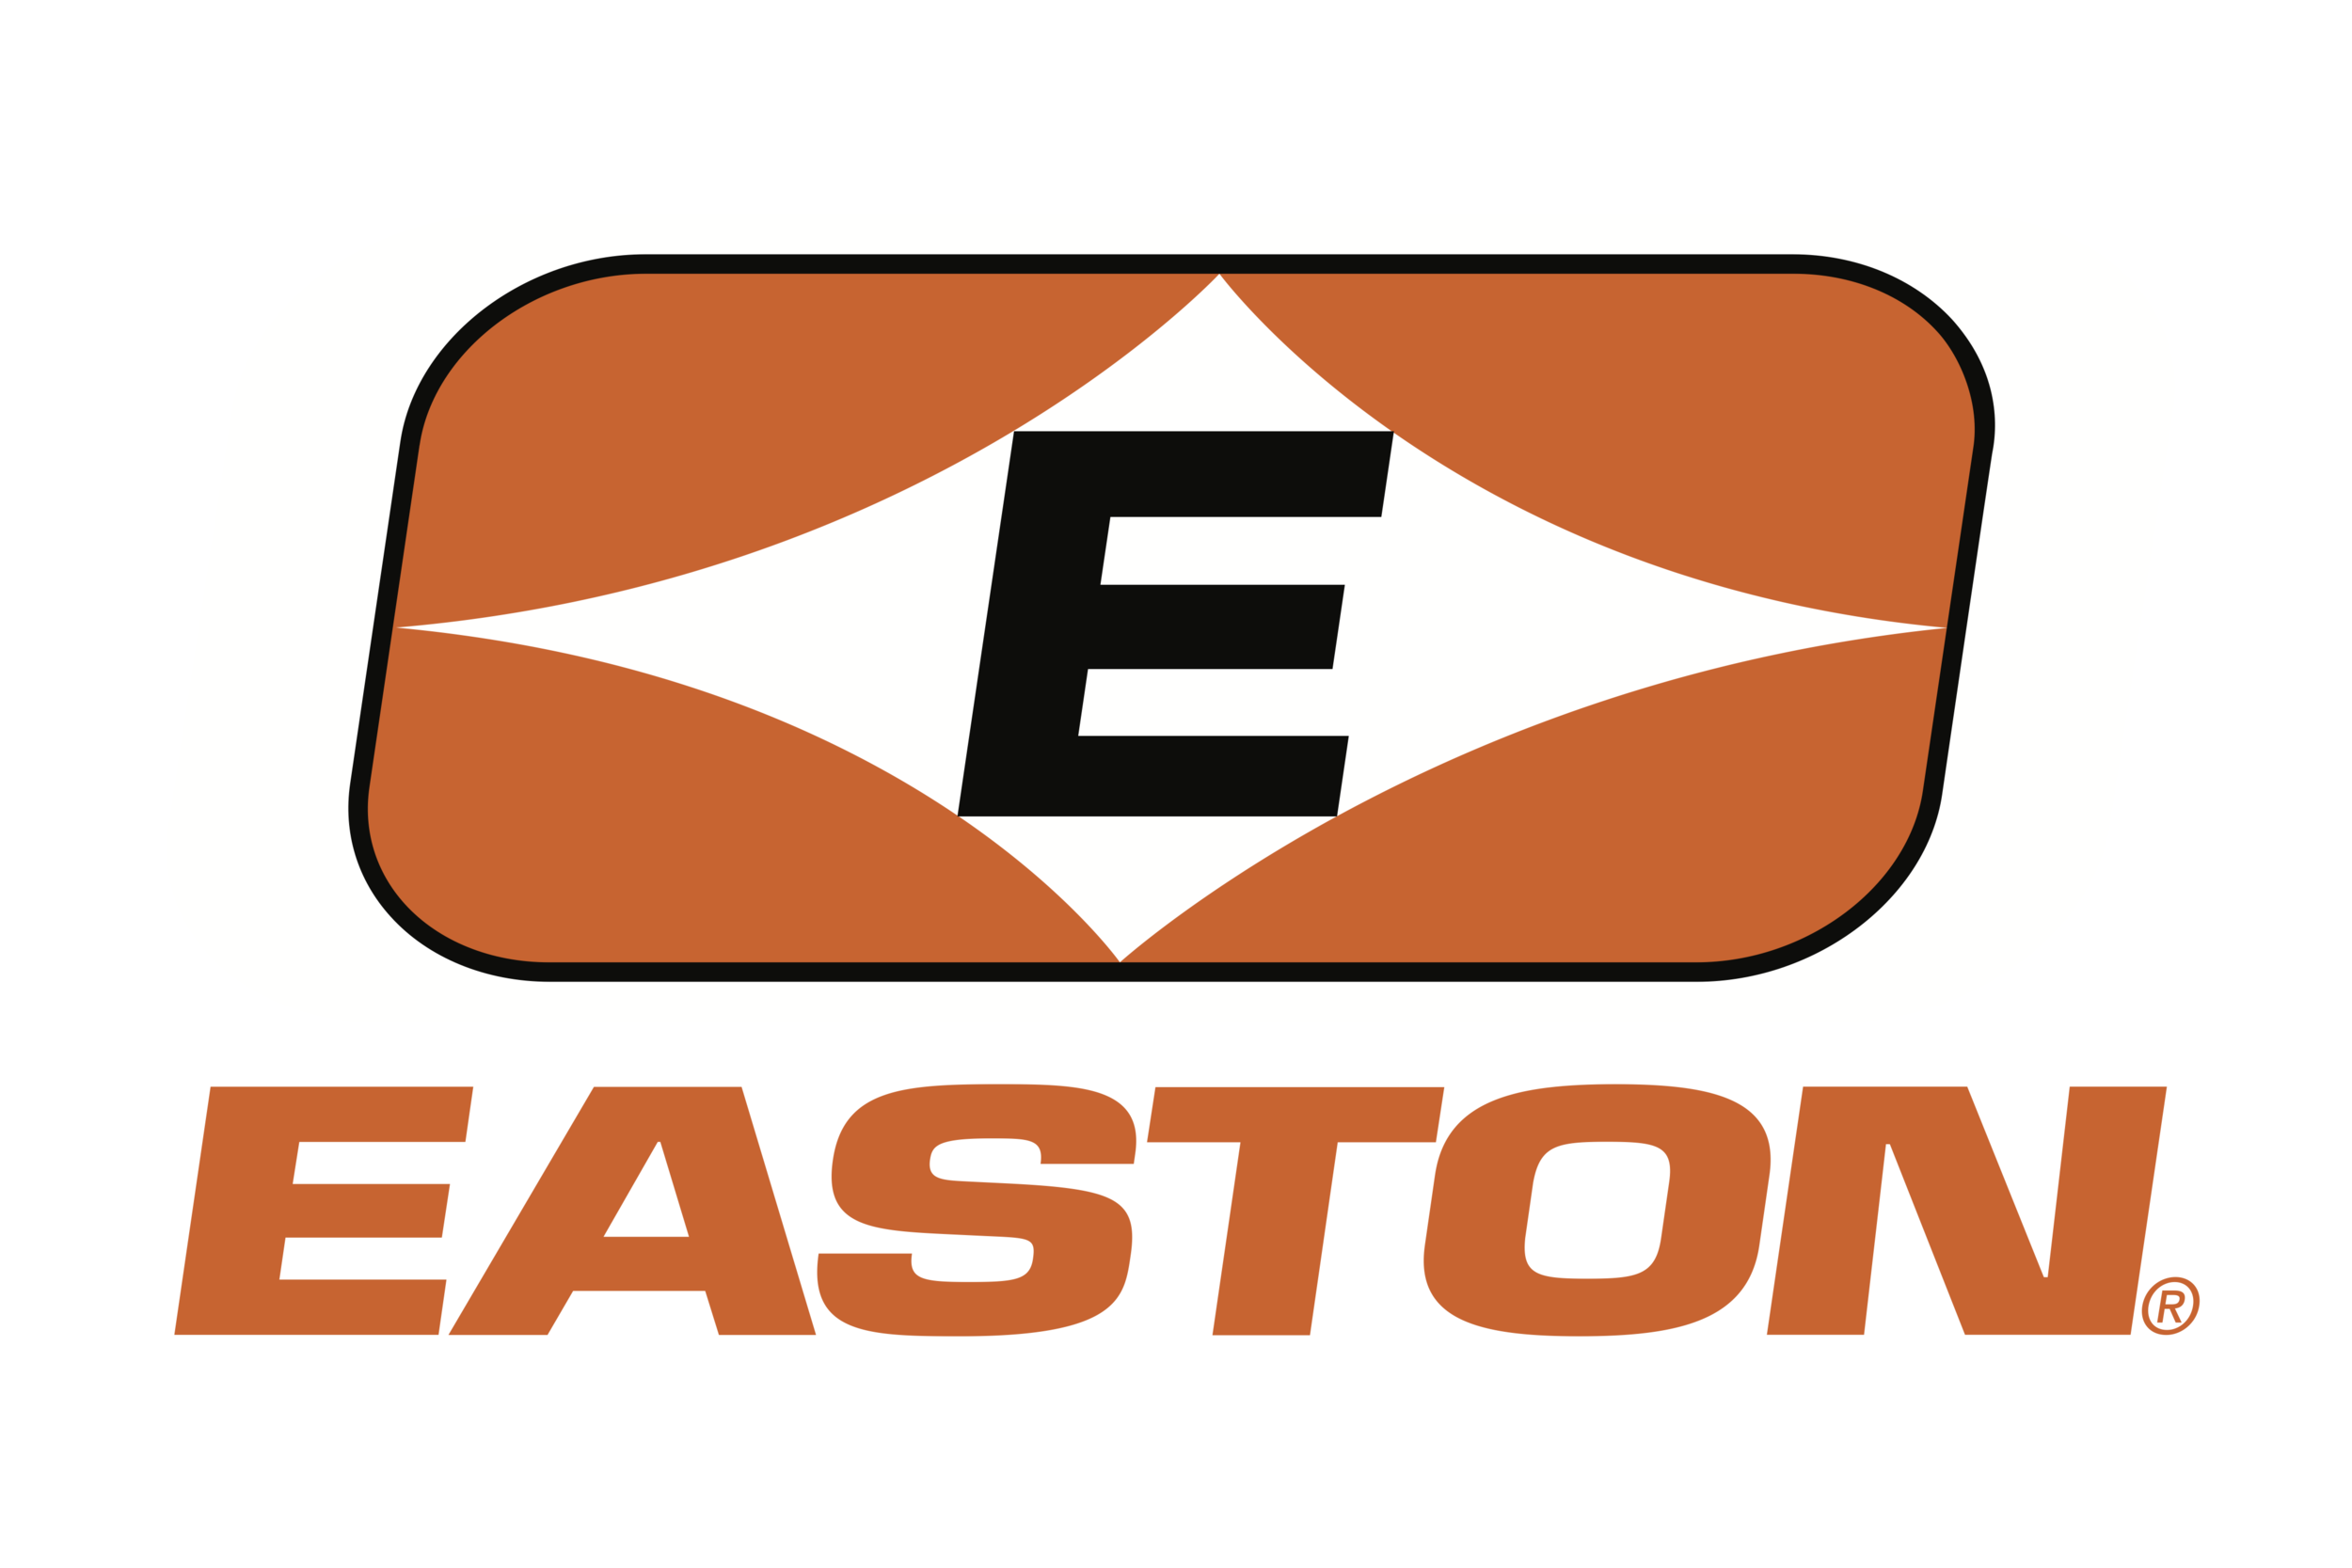 Easton_logo.png